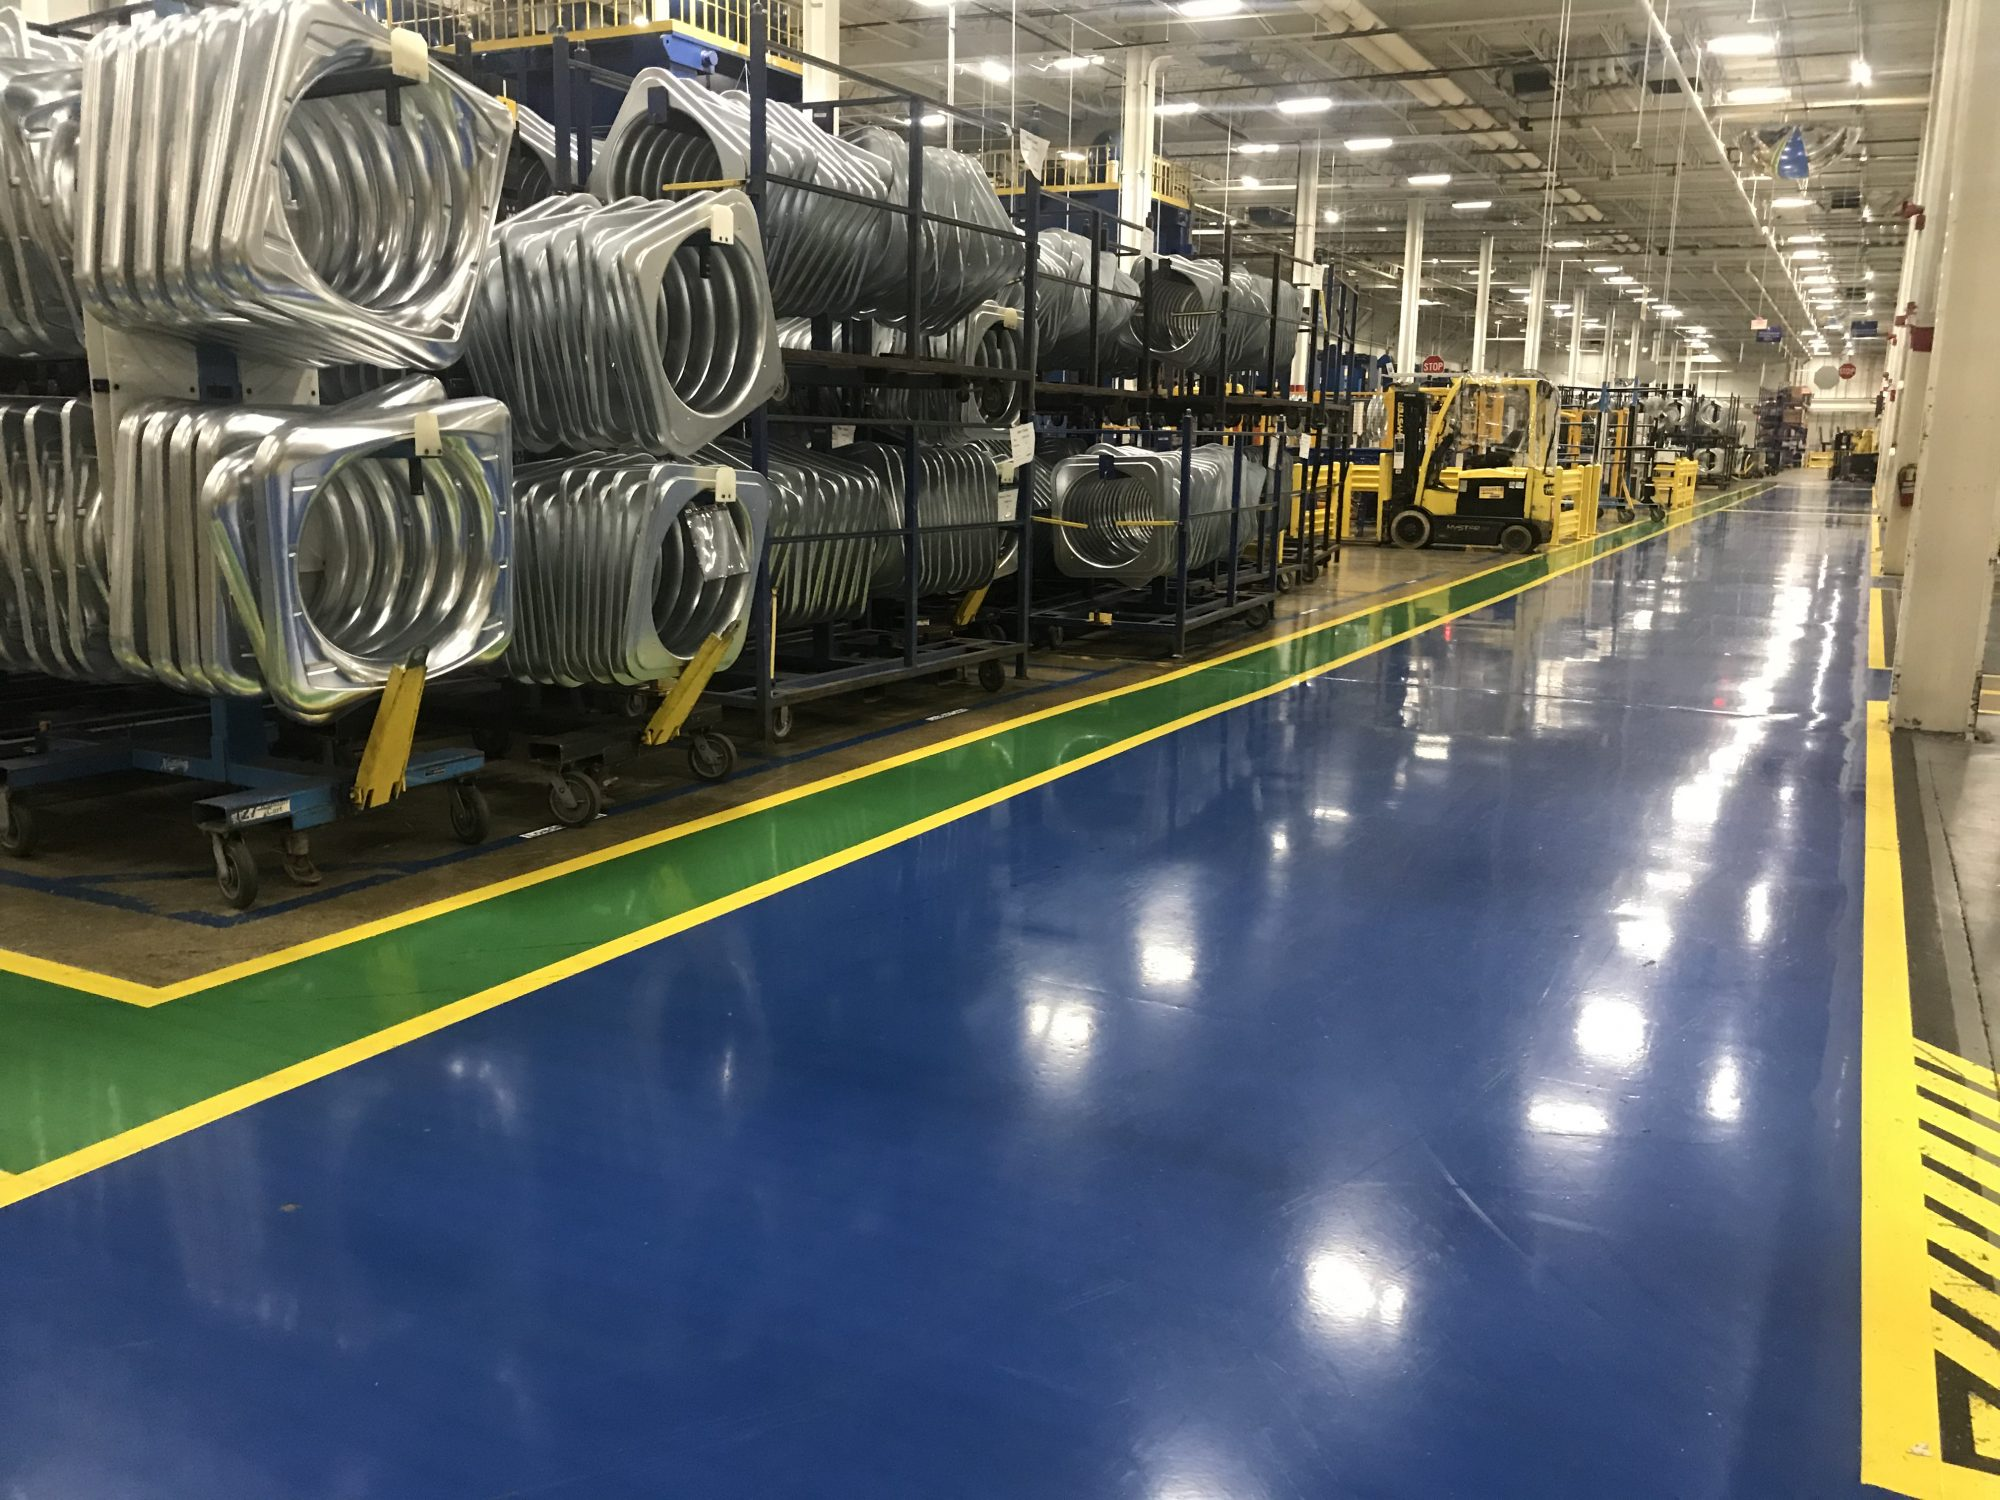 epoxy mortar overlay, manufacturing floor coatings, safety striping, aisle striping, epoxy floor coatings